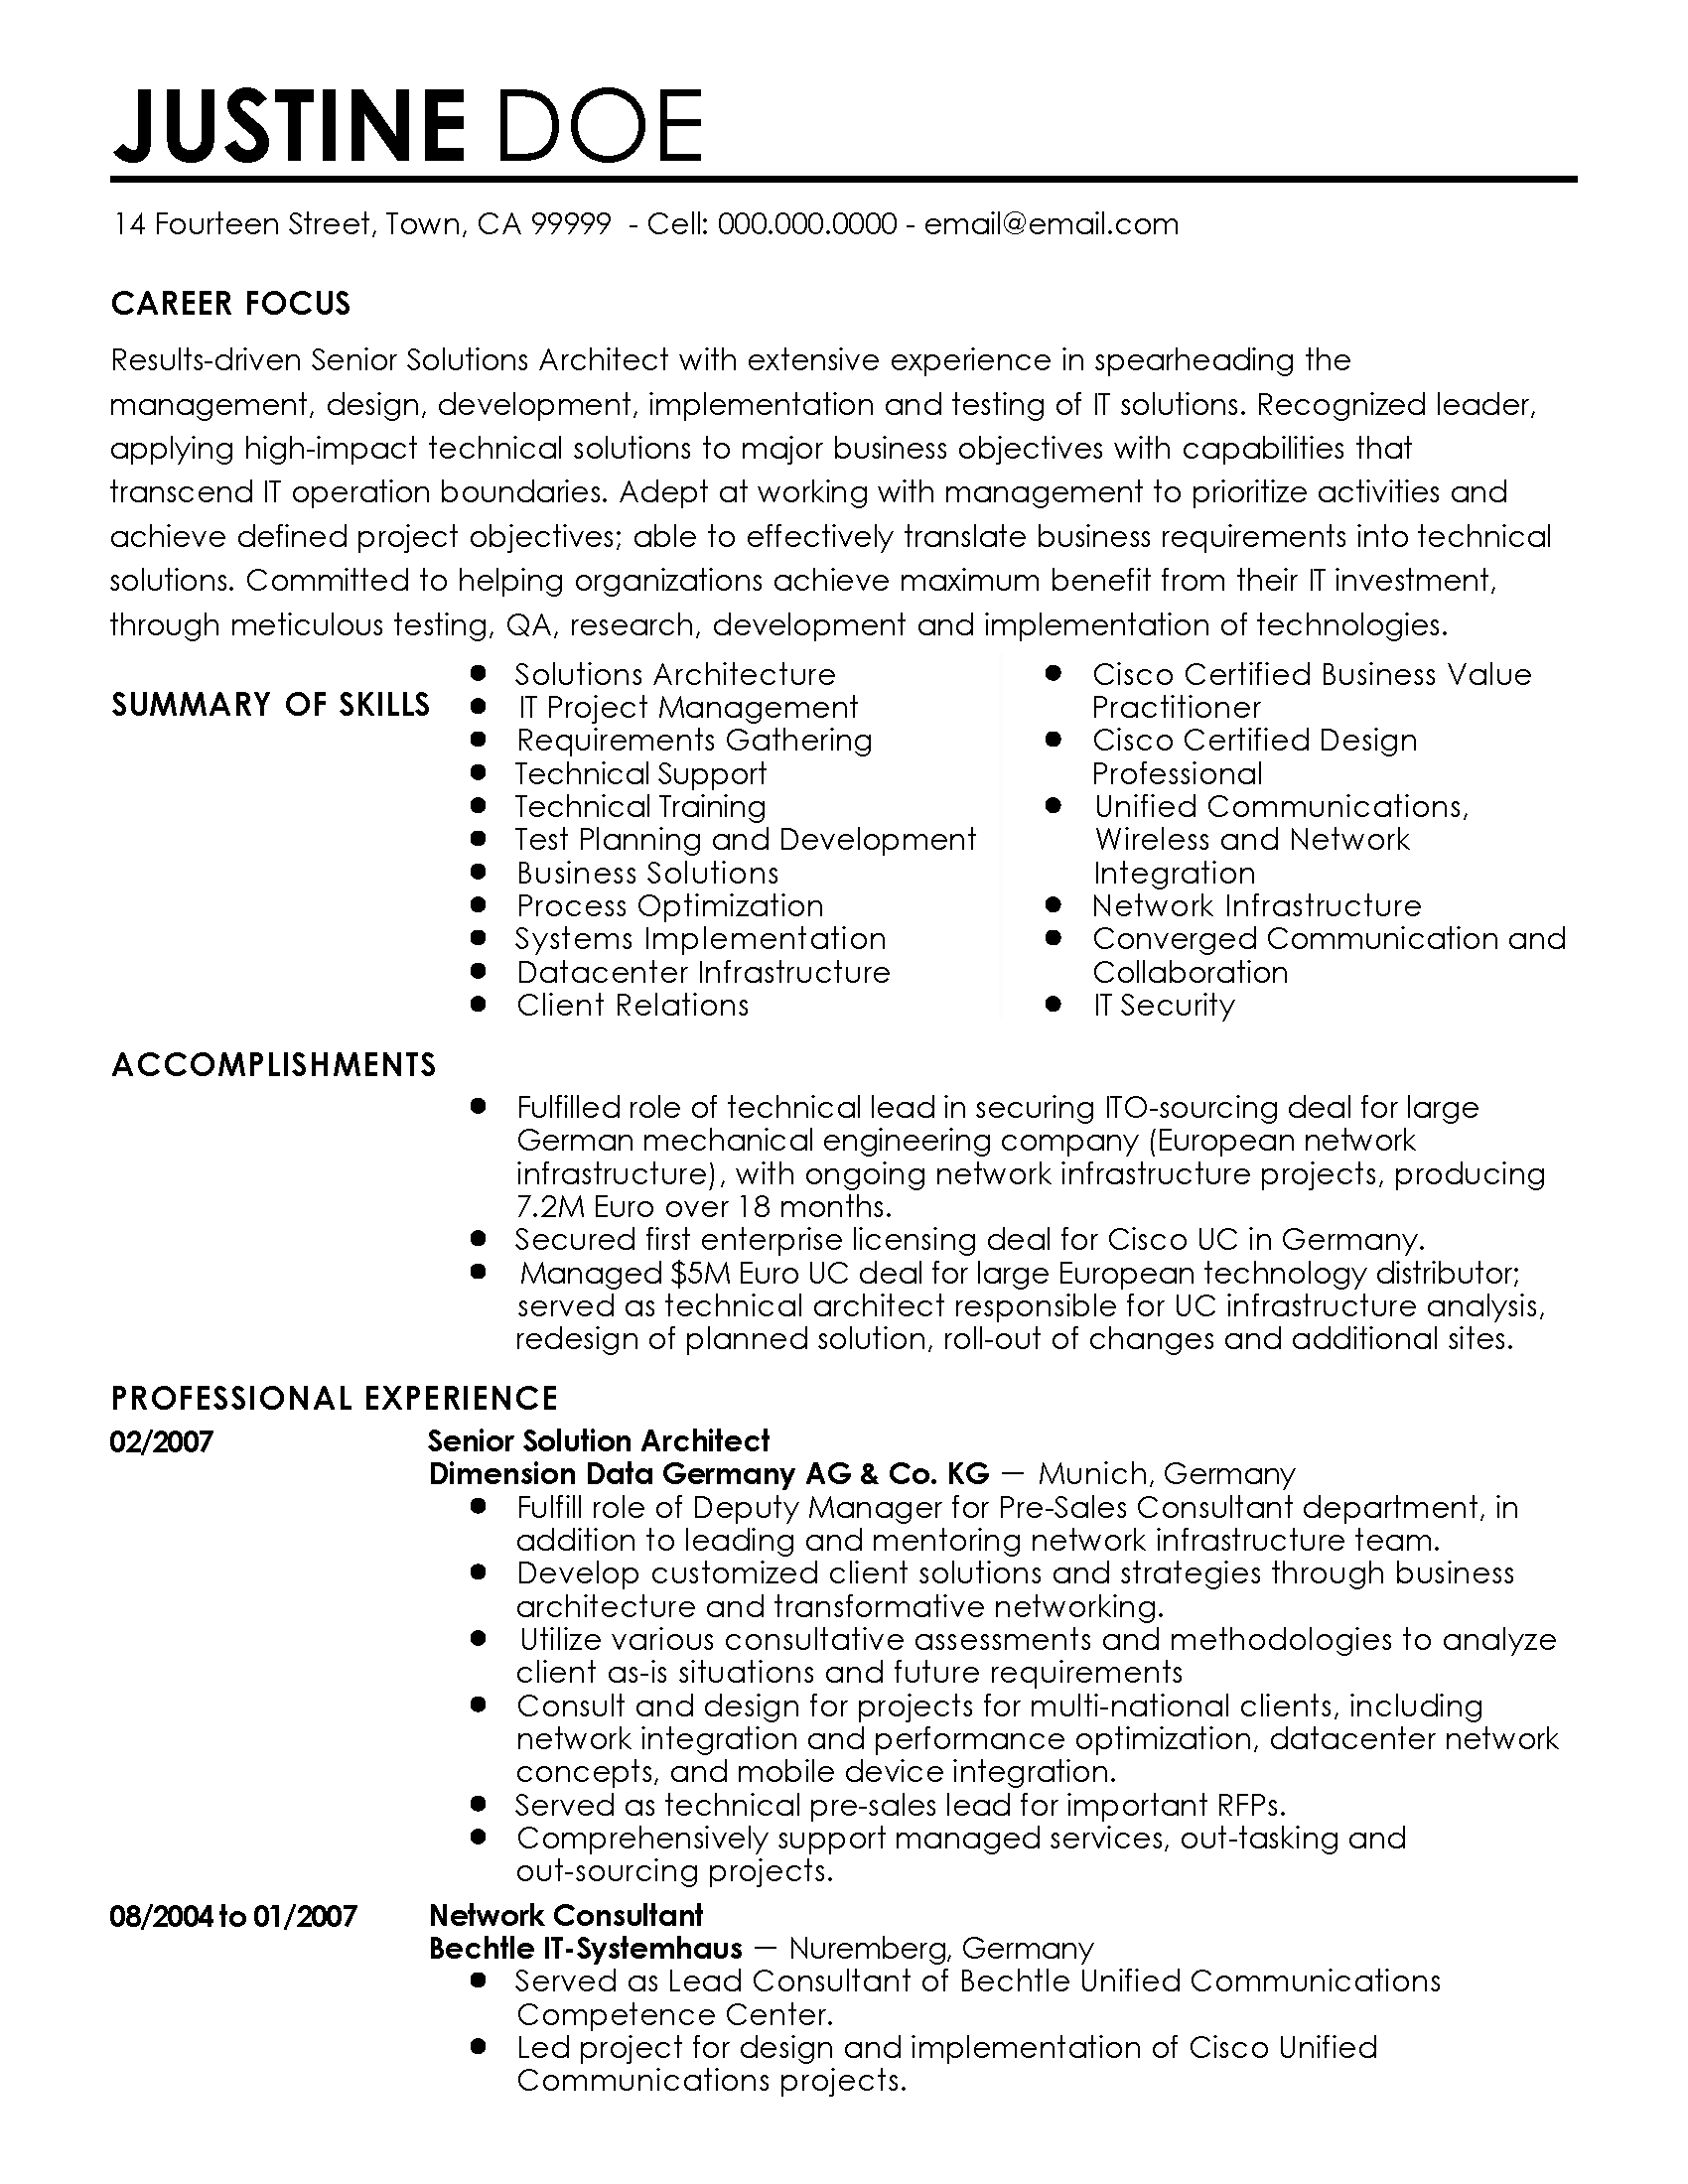 Cloud Consultant Resume Professional Senior Solutions Architect Templates To